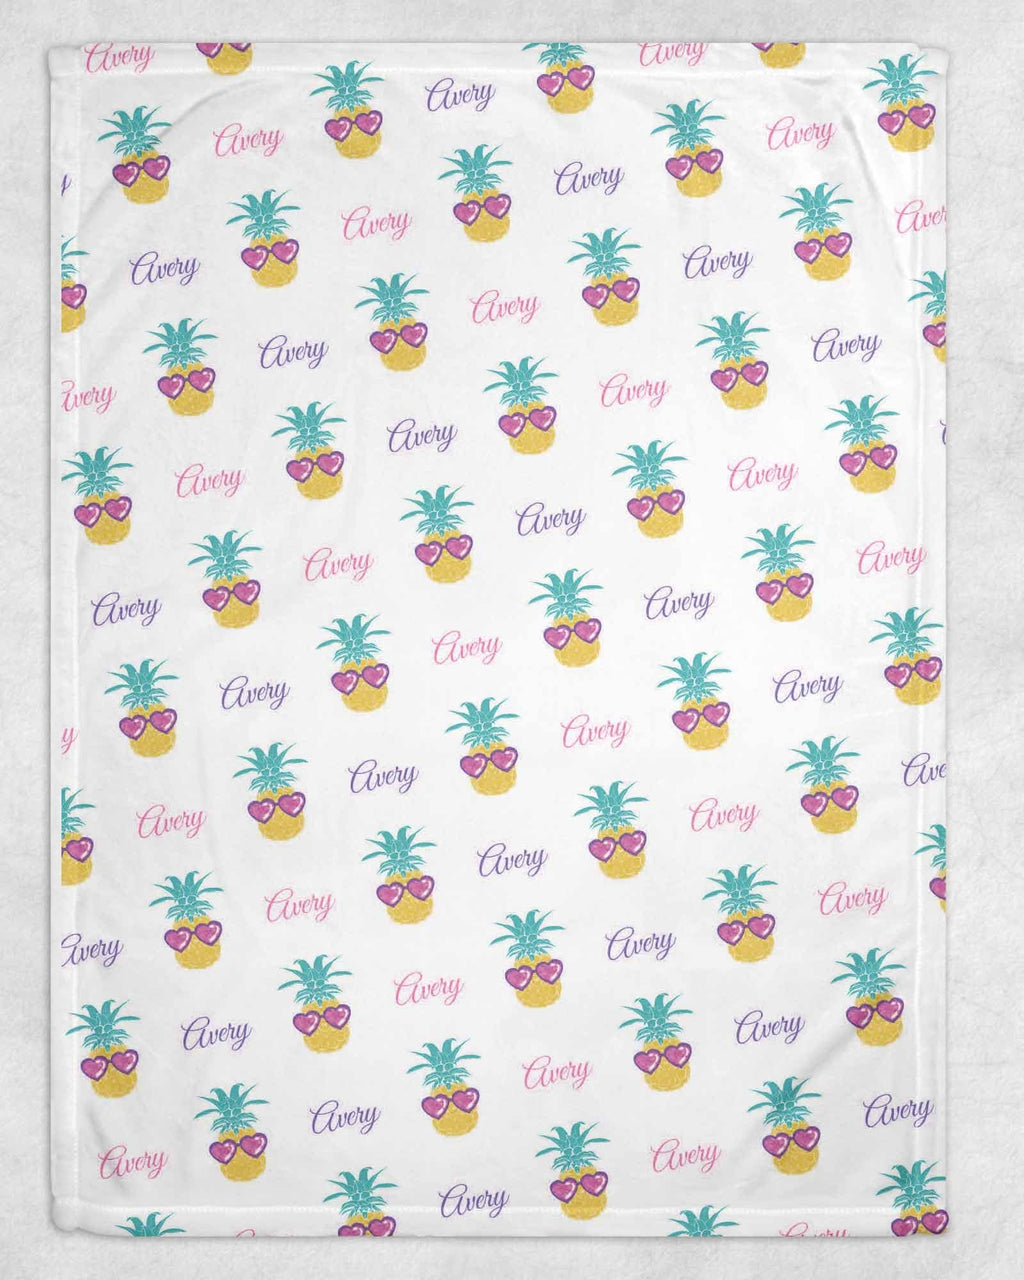 Pineapple Personalized Blanket - Potter's Printing